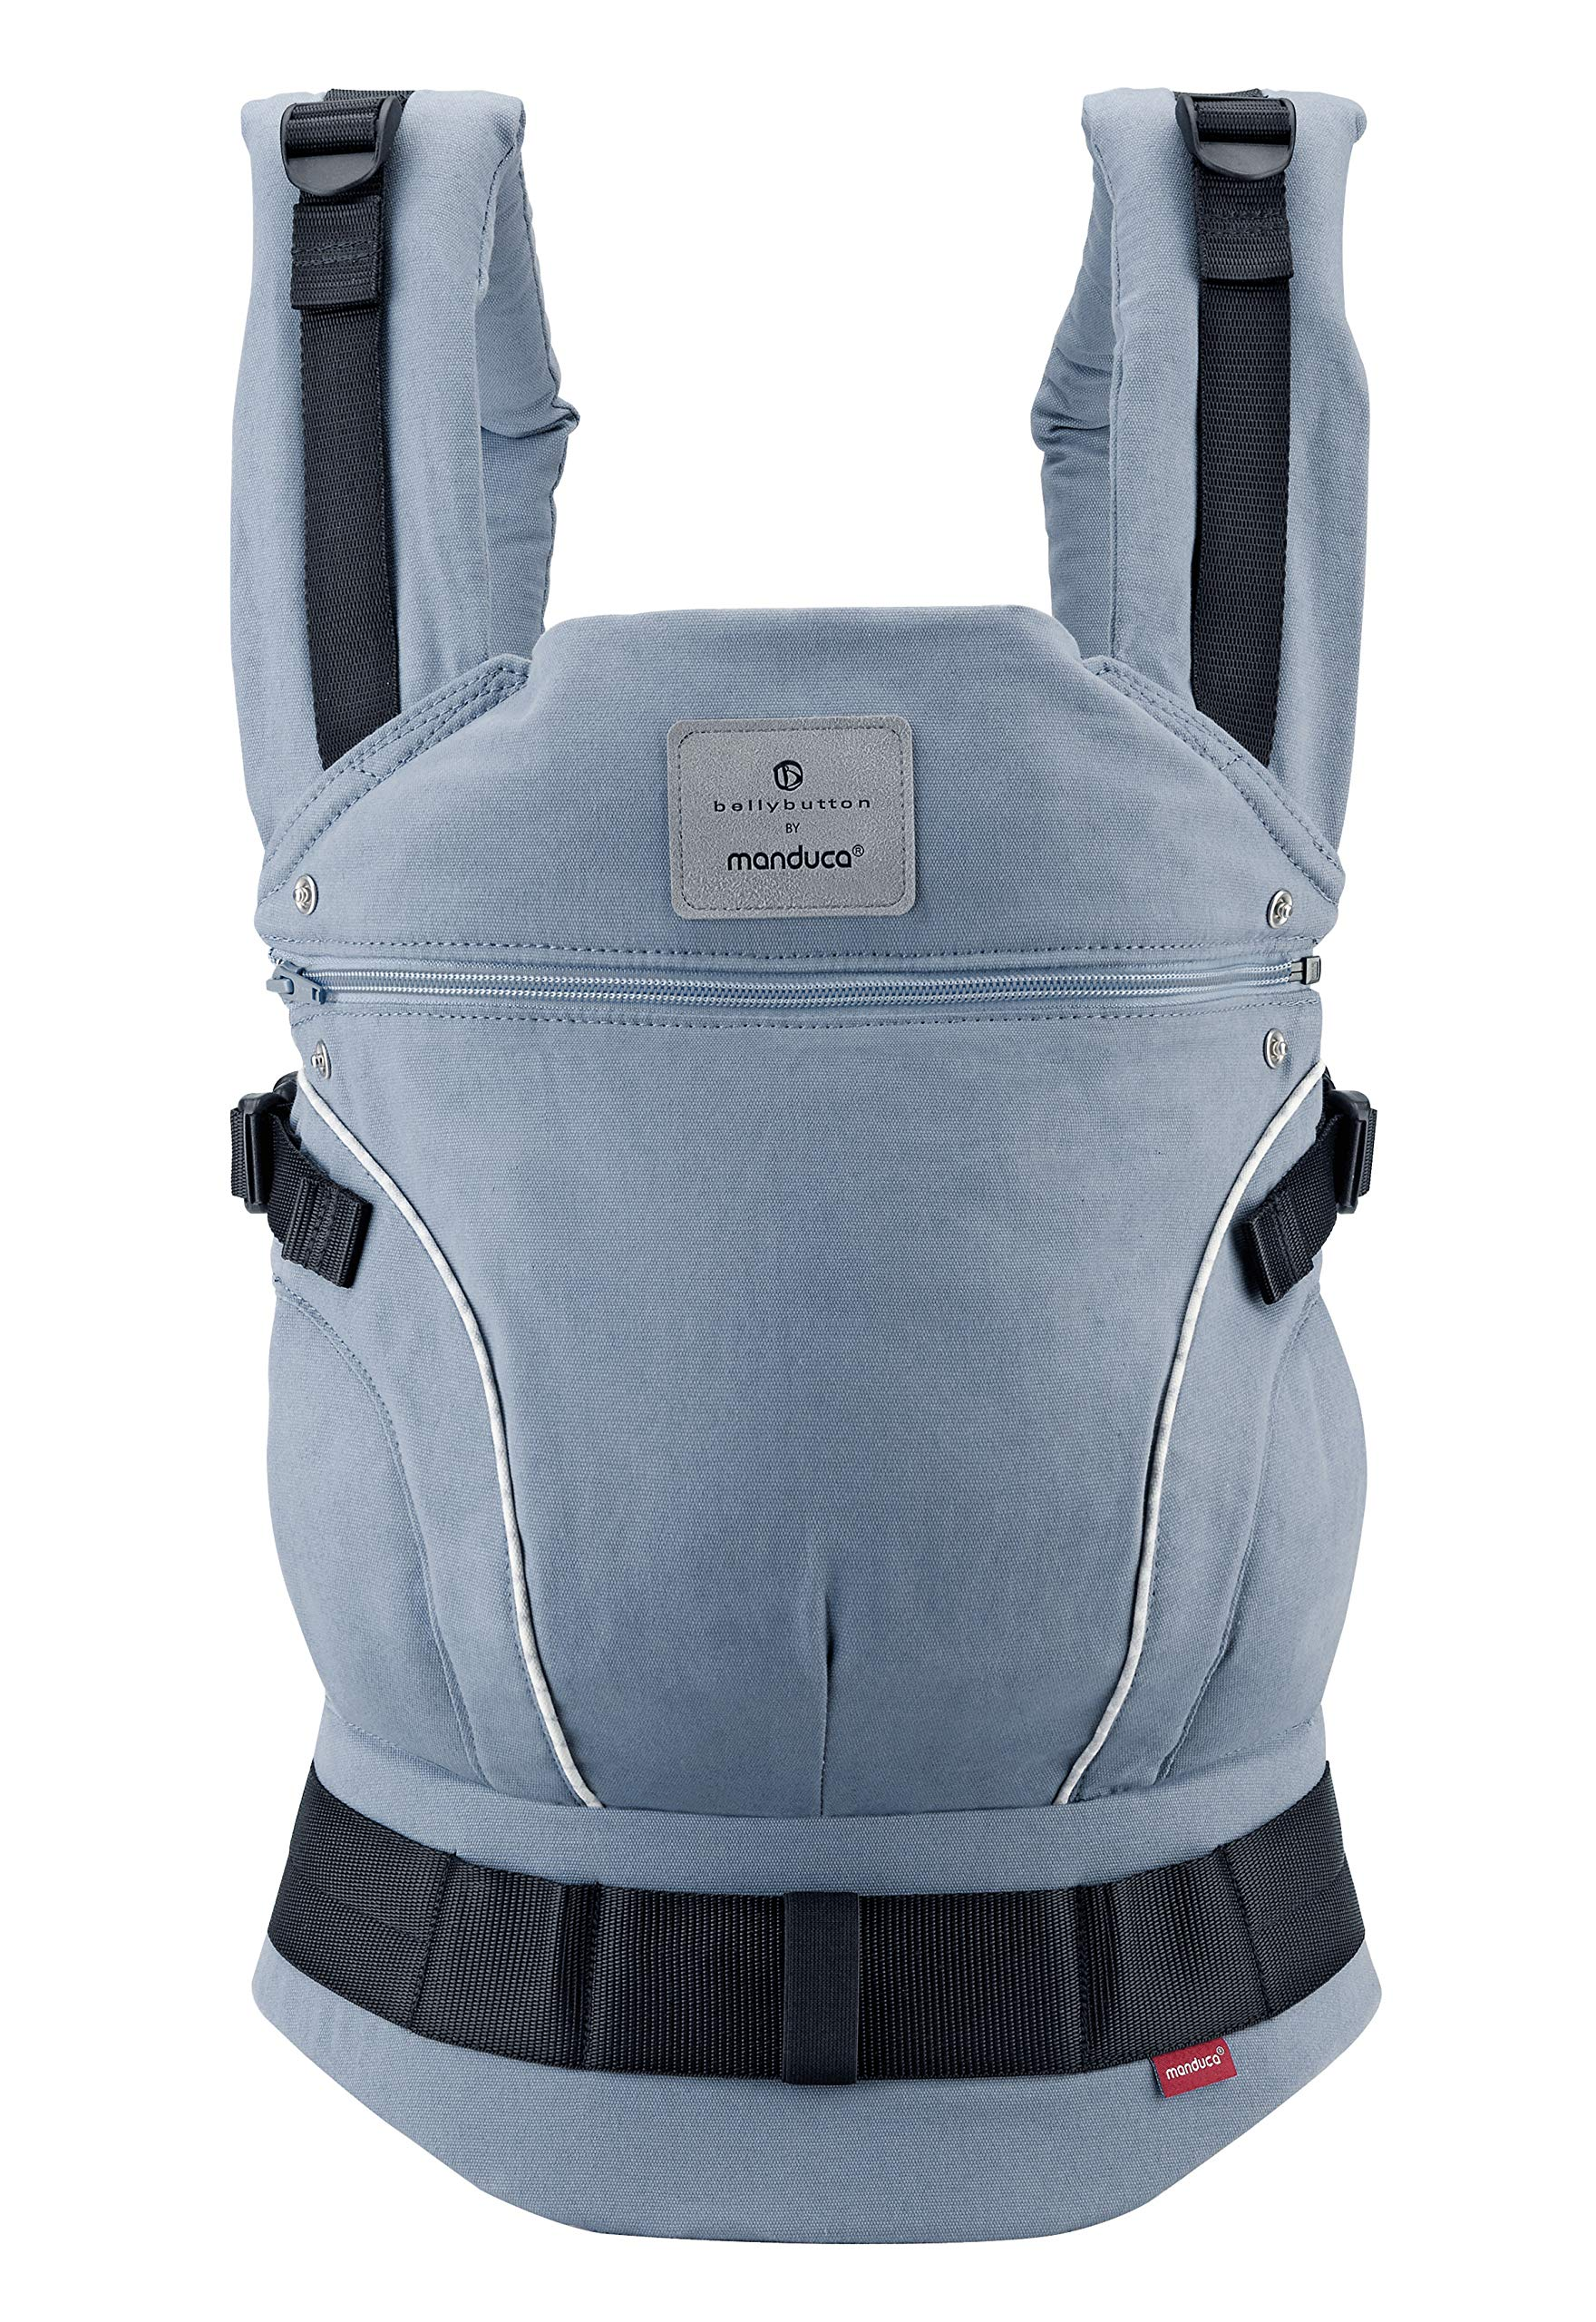 manduca First Baby Carrier > Bellybutton by manduca Edition, SoftCheck Blue < Child Carrier with Ergonomic Waist Belt & Patented Back Extension, Newborn to Toddler Manduca Trendy design in typical Bellybutton look, fine checked pattern on elegant grey, premium baby carrier made from 100% soft organic cotton with optimised finish, does not attract lint. Already integrated: seat reducer, stowable head and neck support, patented back extension, recommended accessories for newborns: Size-It (bridge reducer) and ZipIn ellipse. Ergonomic design for parents: anatomically shaped, dimensionally stable hip belt (up to 140 cm), 3-way adjustable soft padded shoulder straps, relieves the back and distributes the weight. 1